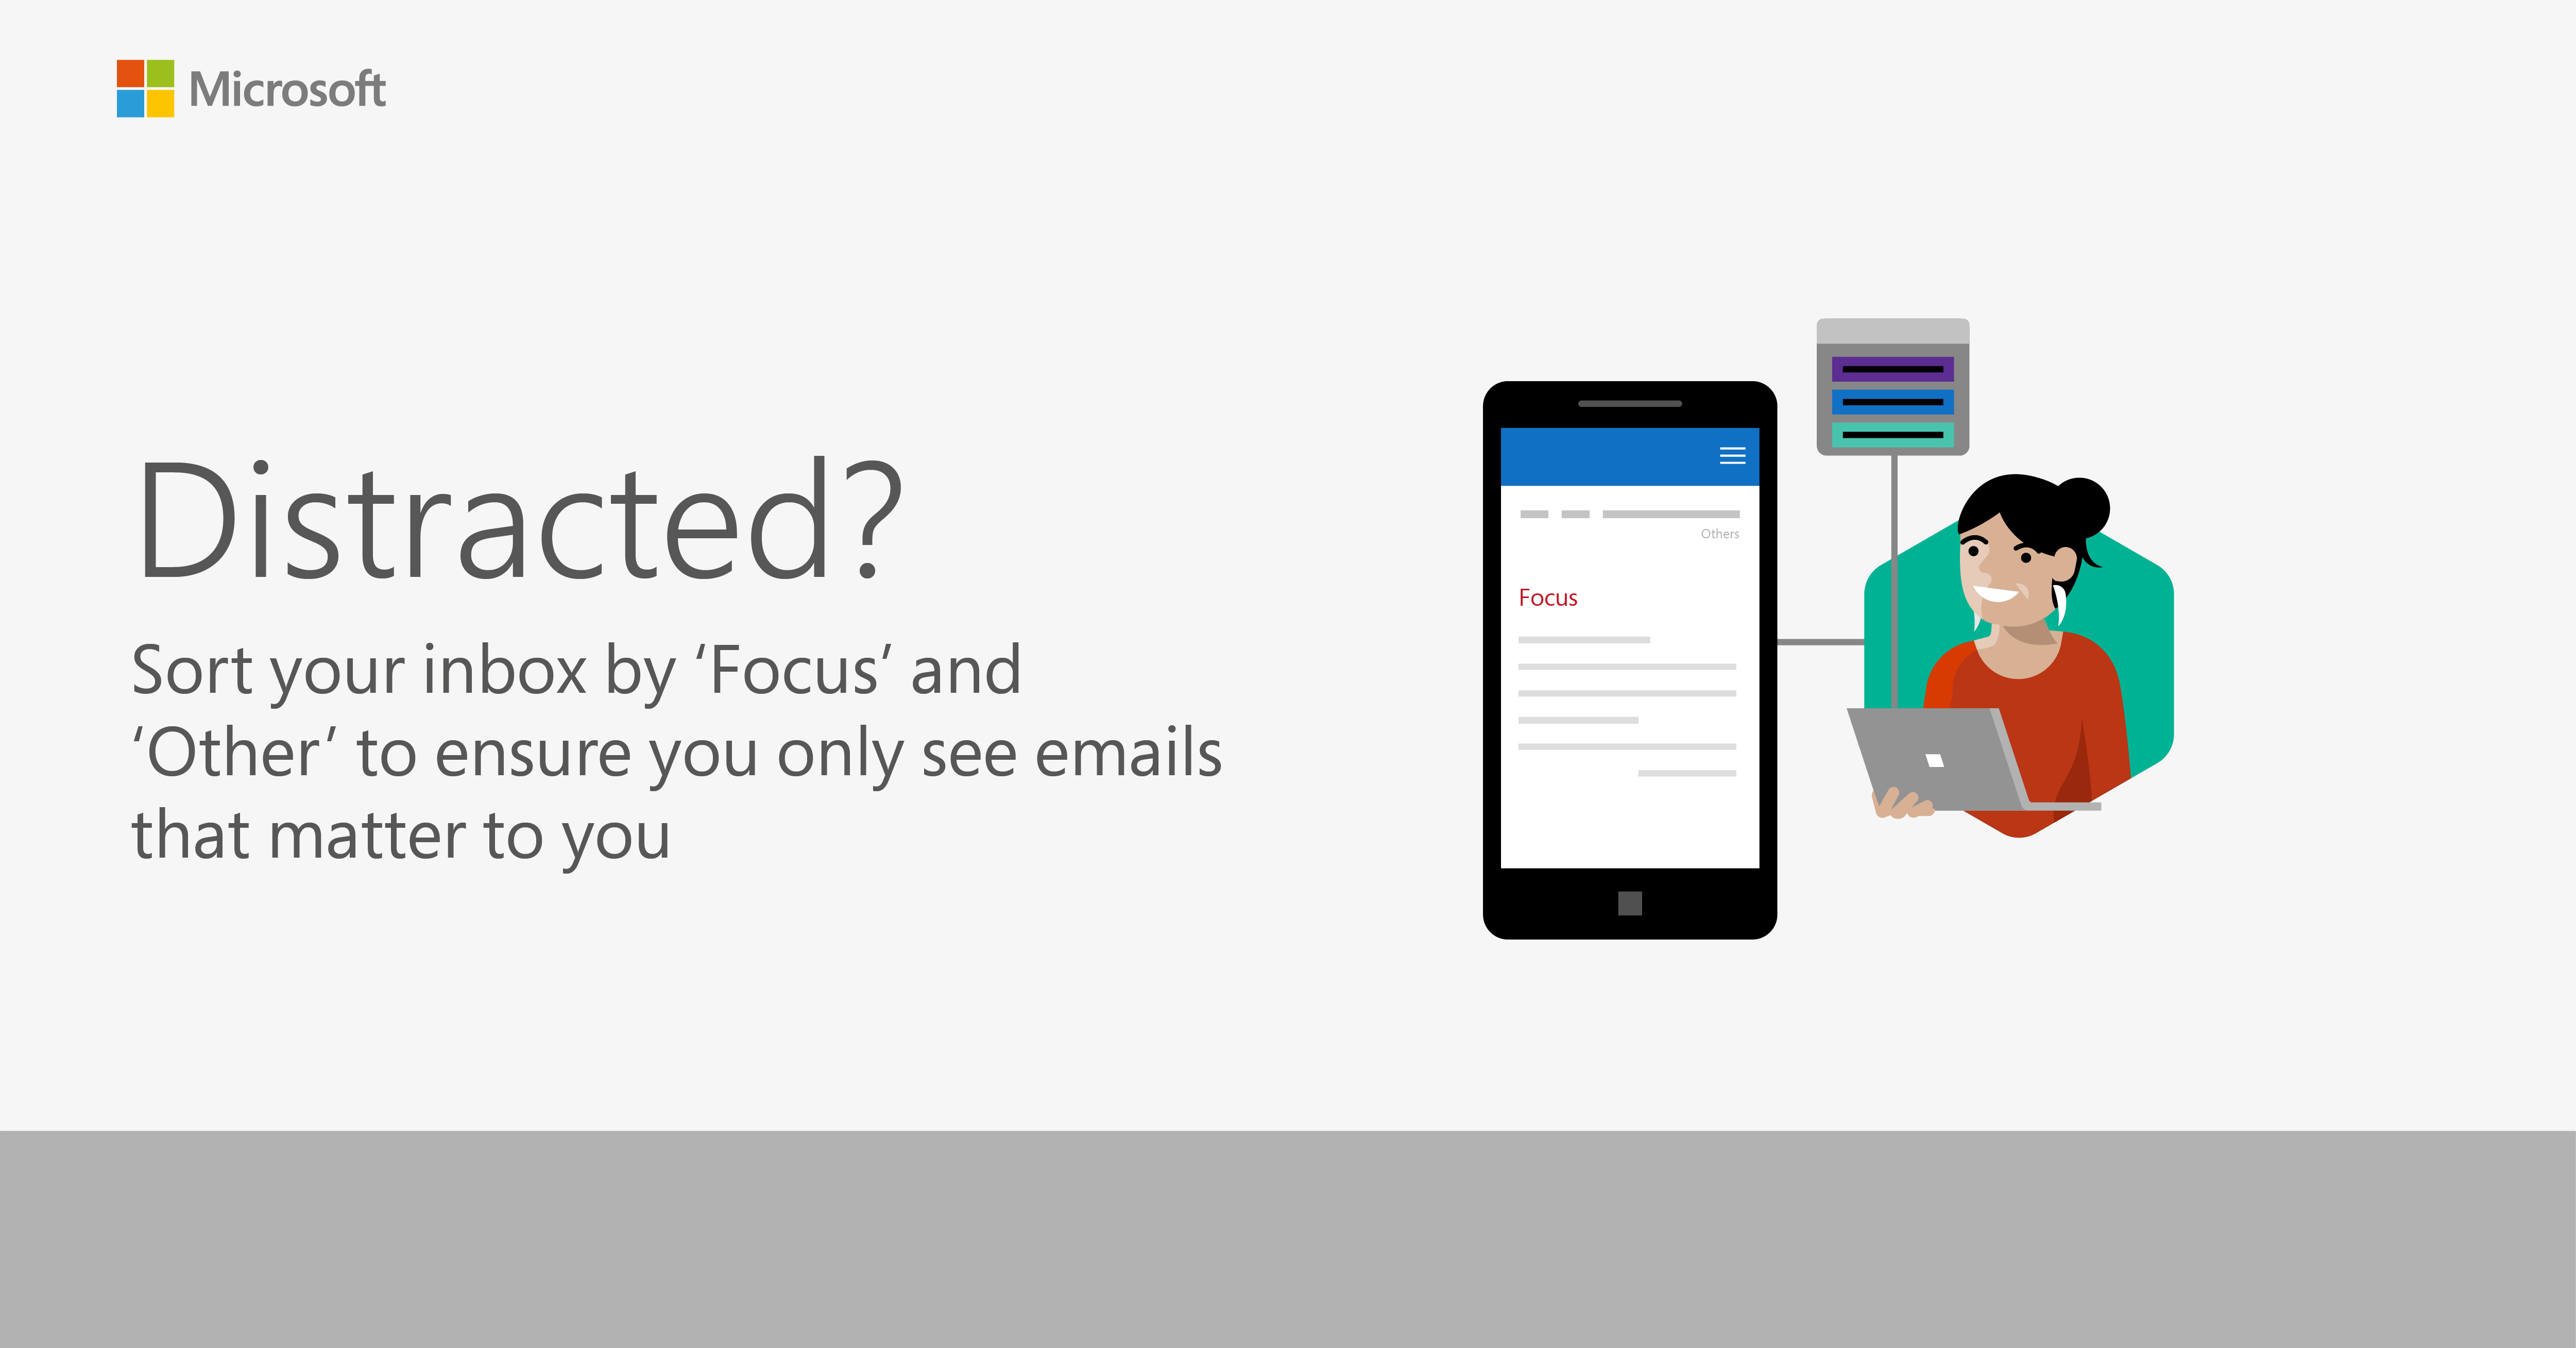 Graphic showing a tip to sort your inbox by focus and other to ensure you only see emails that matter to you